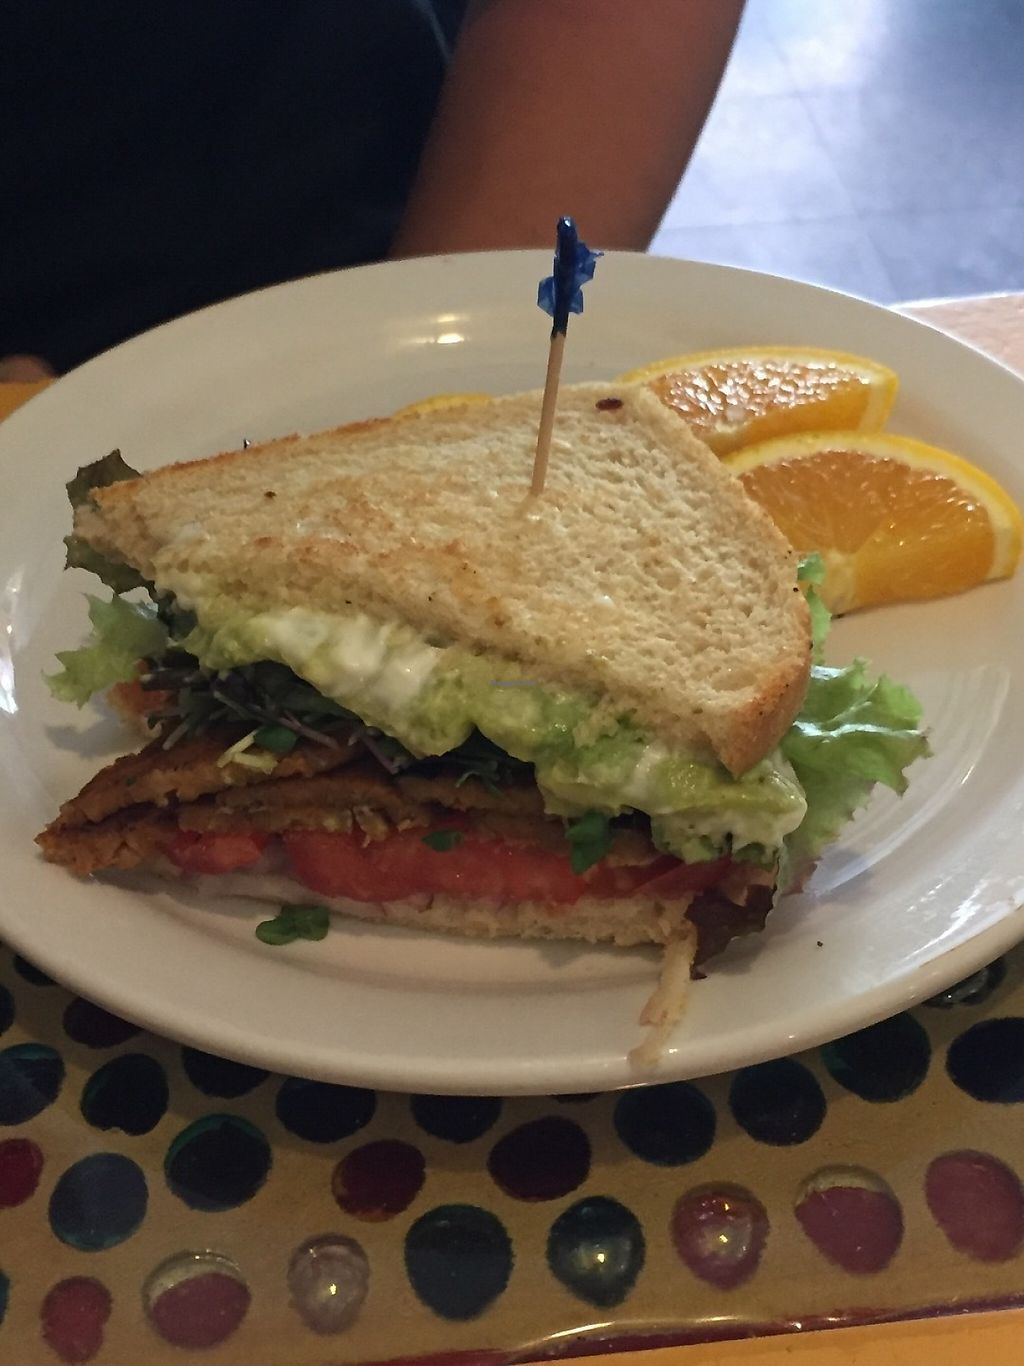 """Photo of Main Squeeze Natural Foods Cafe  by <a href=""""/members/profile/KaitlynnGill"""">KaitlynnGill</a> <br/>The notorious BLT. Tempeh bacon with lettuce and tomato and vegan mayo.  <br/> May 5, 2017  - <a href='/contact/abuse/image/2159/255951'>Report</a>"""